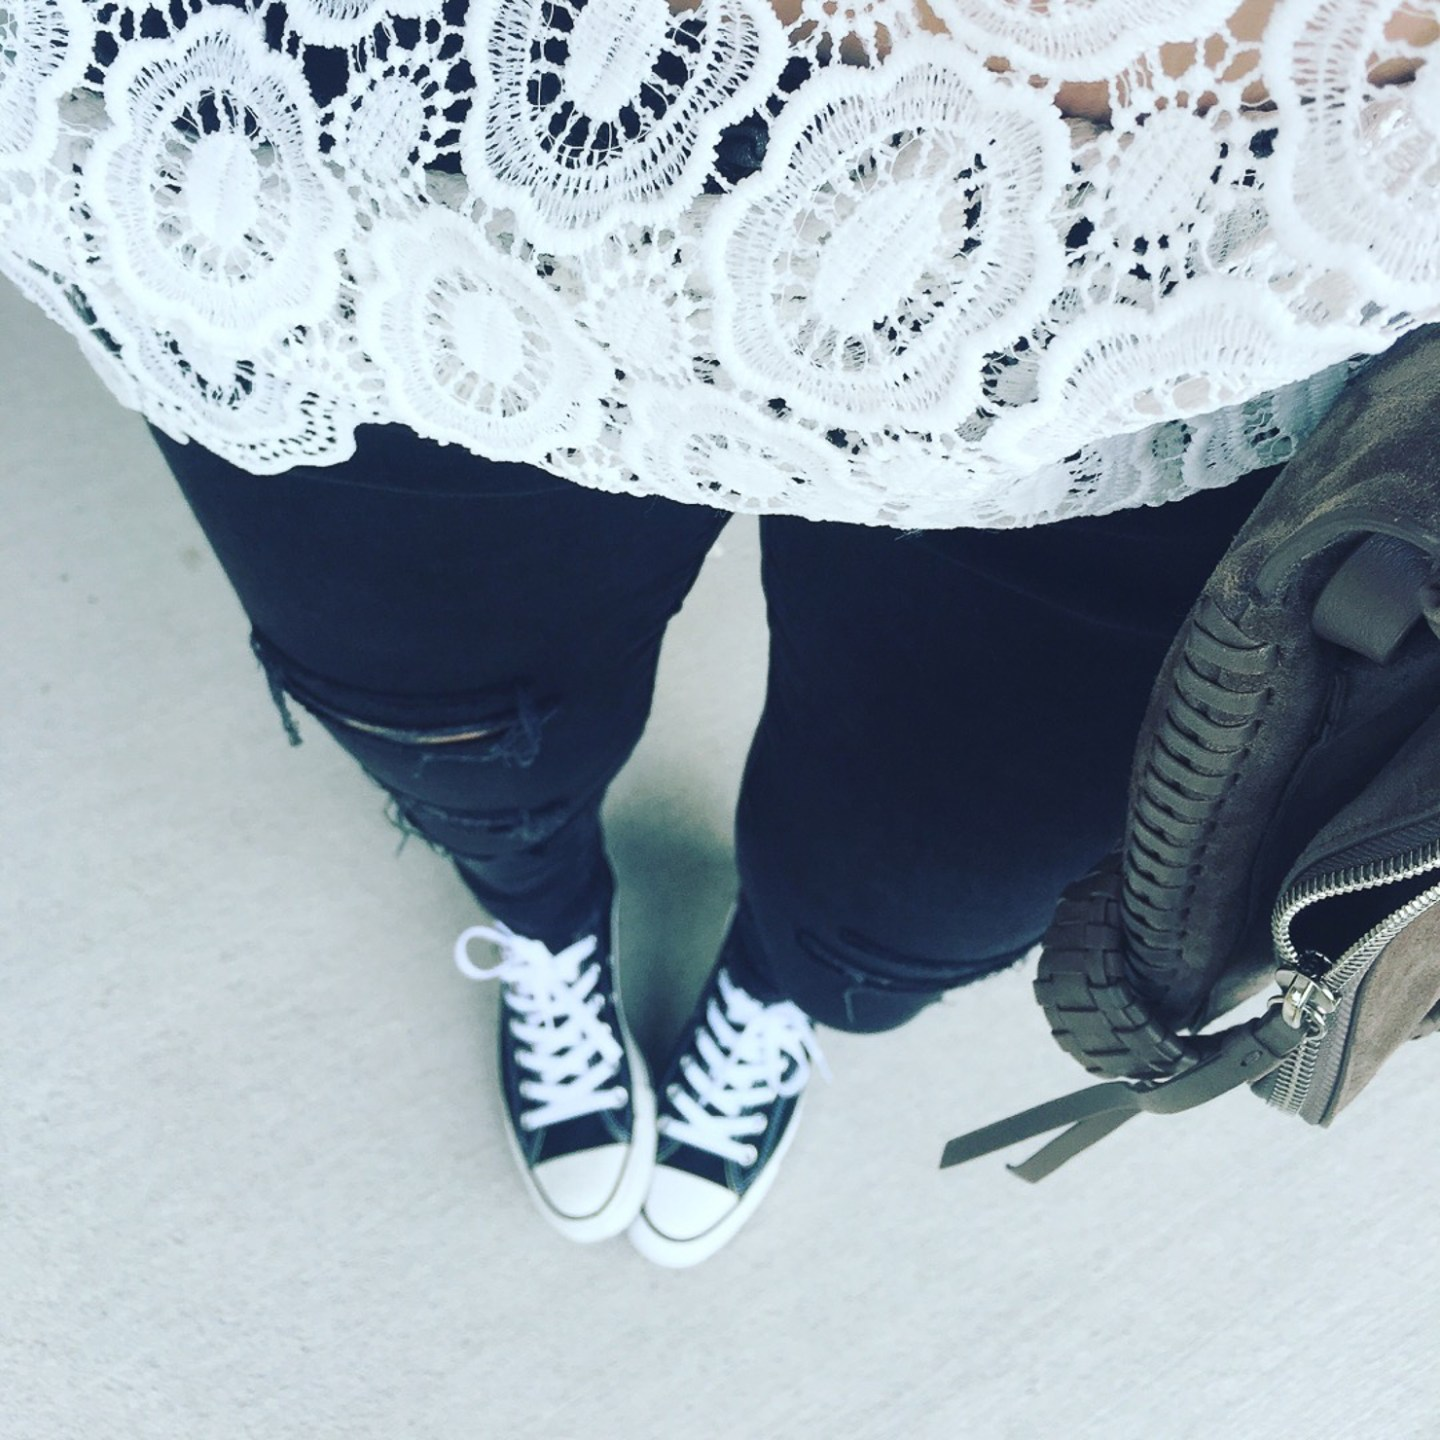 lace-top-black-distressed-jeans-black-converse-from-where-I-stand